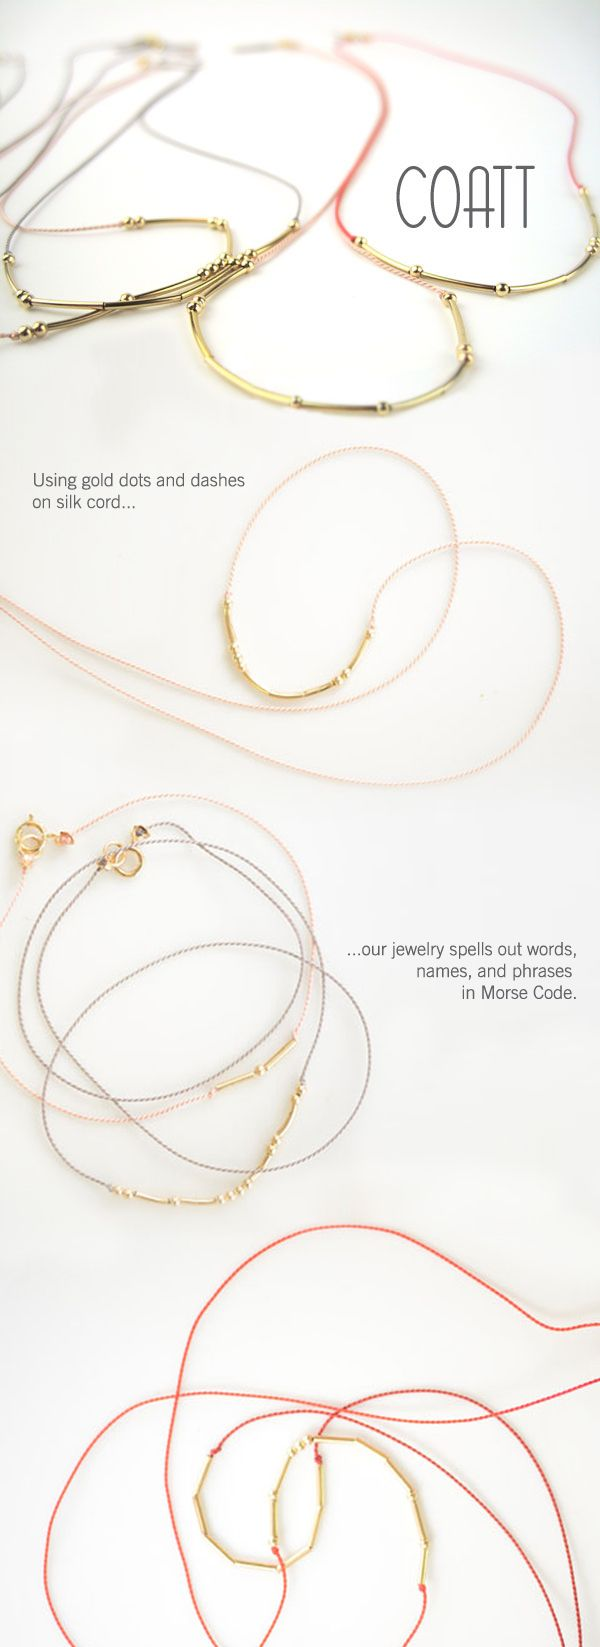 gift-your-bridesmaids-with-coatt-jewelry